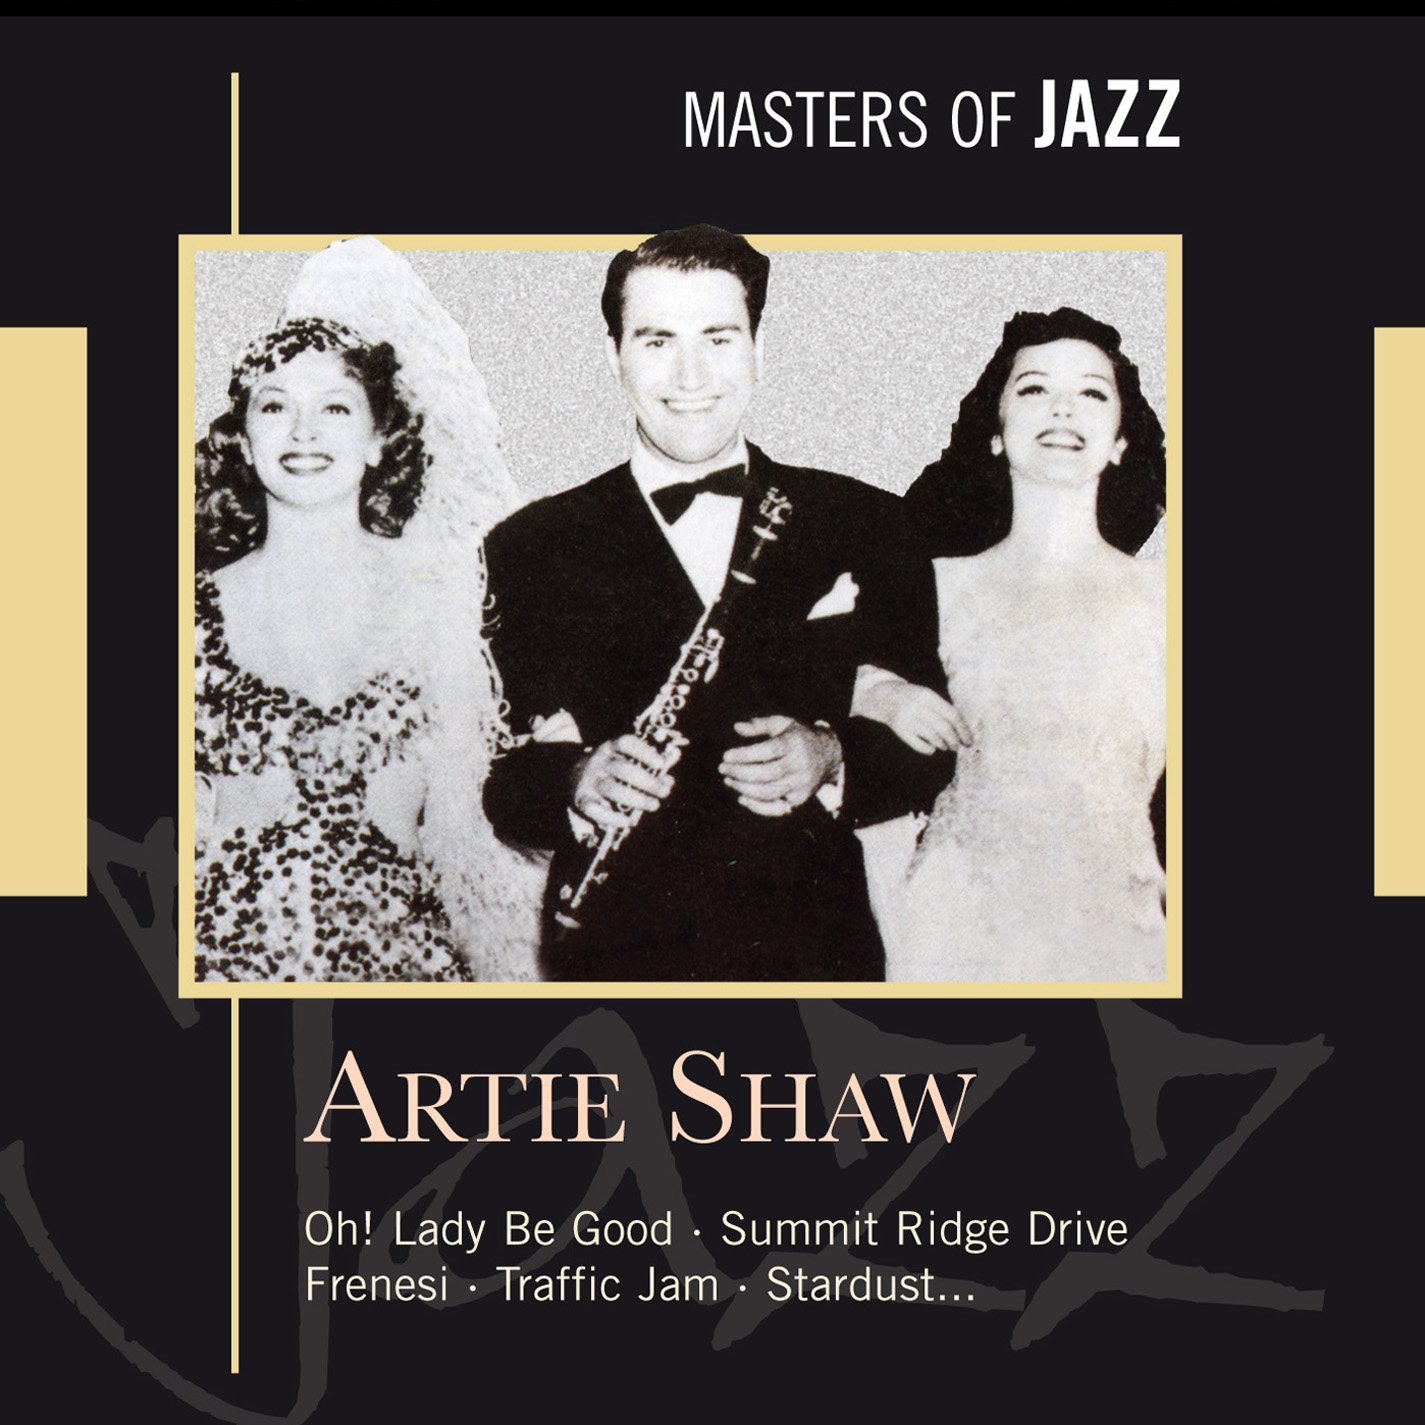 Artie Shaw Genre Artie Shaw Artie Shaw Masters Of Jazz Mvd Entertainment Group B2b